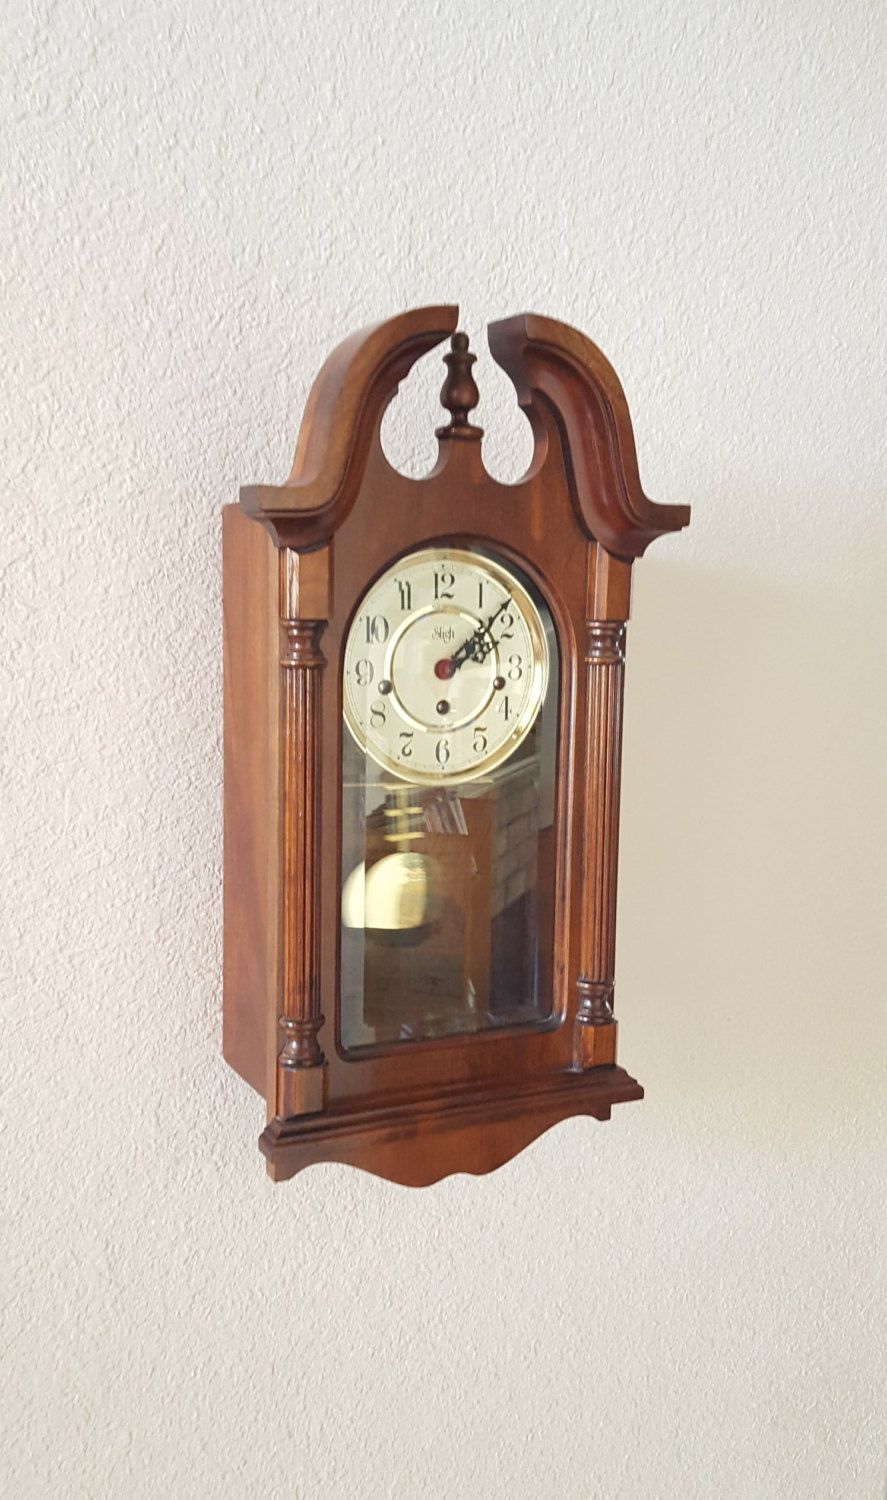 Vintage Antique Sligh Heirloom Quality Westminster Chiming Wall Clock Parlor Clock Professionally R Chiming Wall Clocks Antique Wall Clock Heirloom Quality